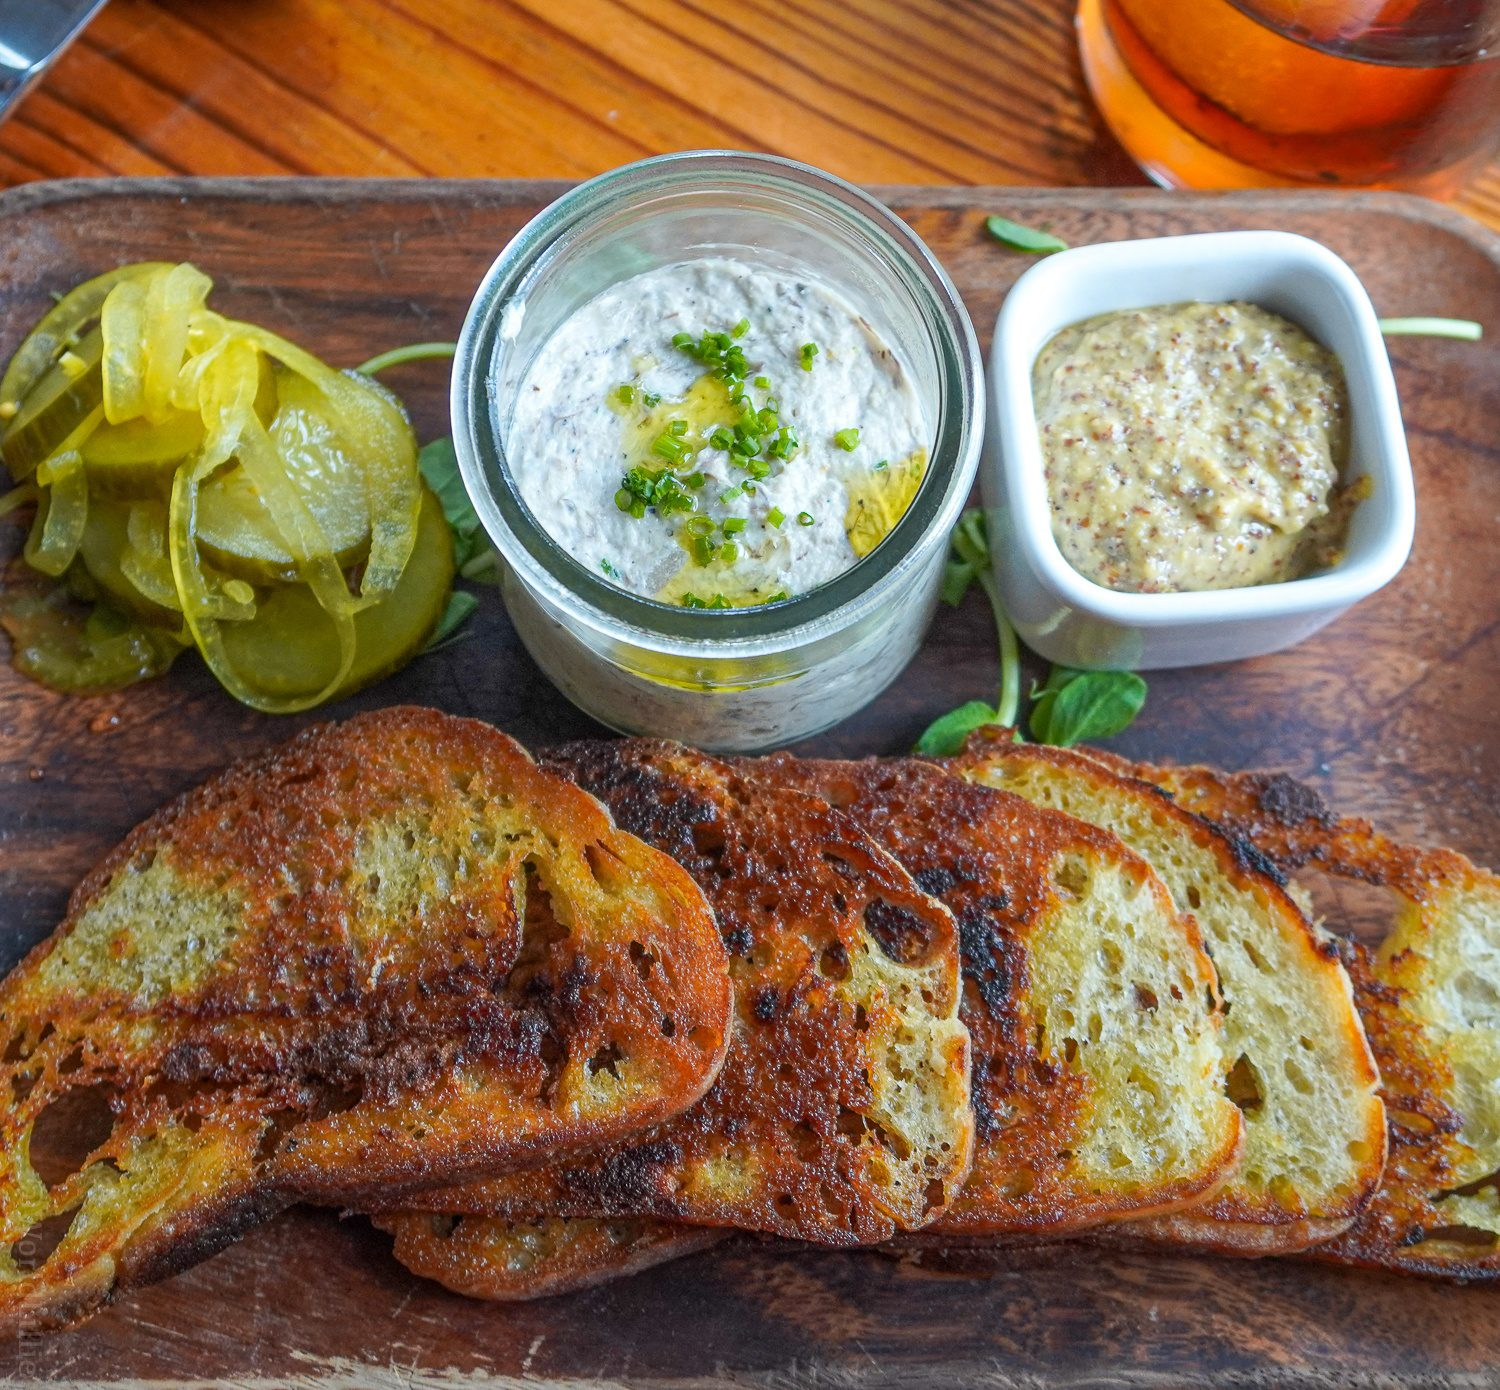 Smoked bluefish pate, mustard, pickles, and toast at Water Street.